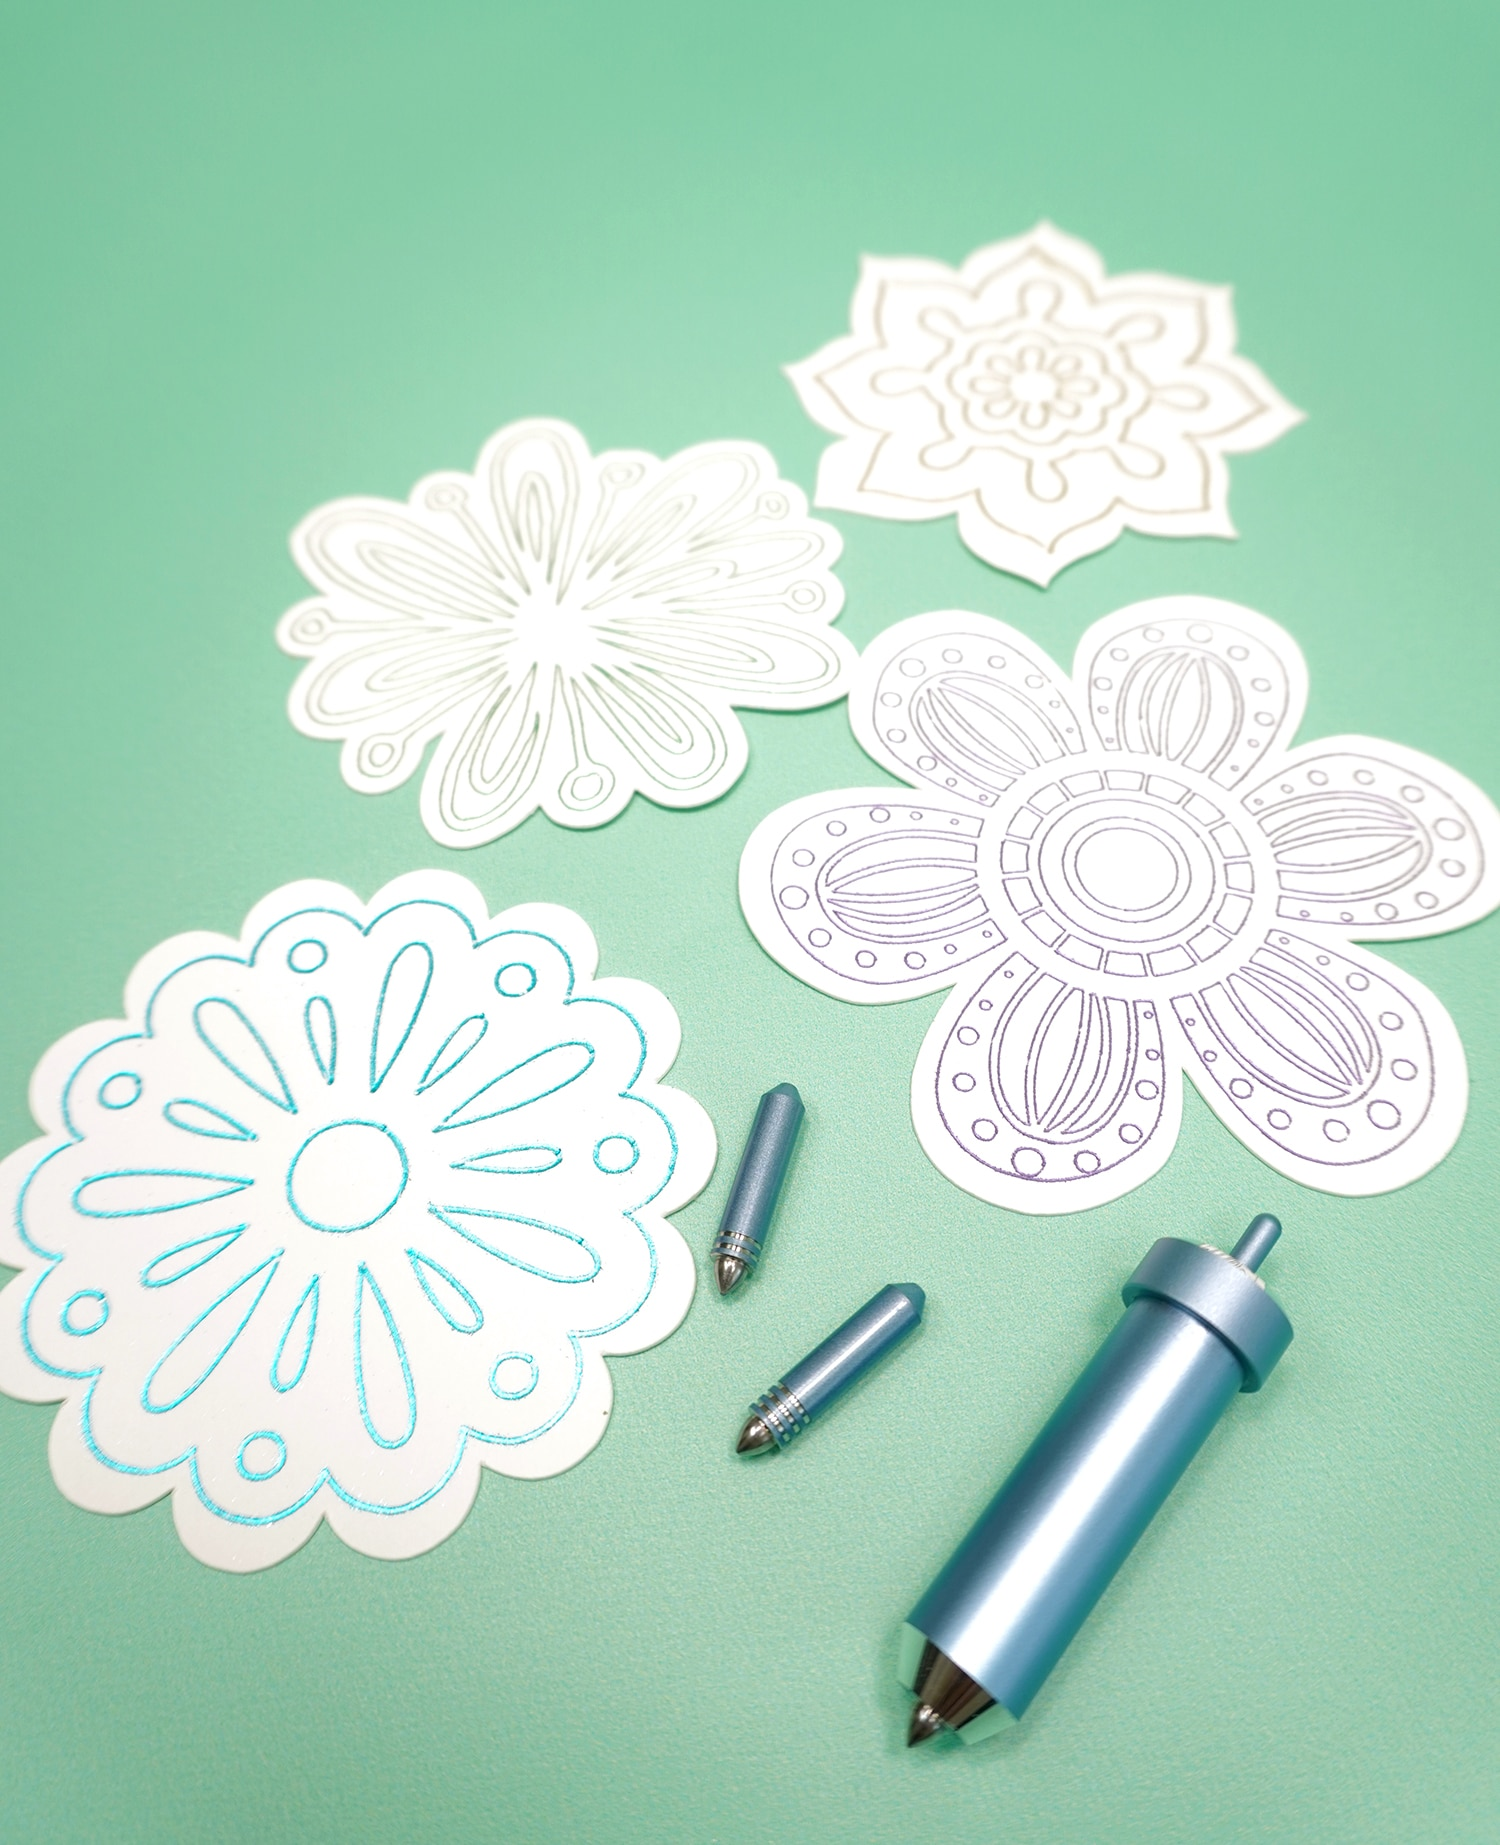 Cricut Foil Transfer Tools and Tips with white foil embellished flower die cuts on mint green background